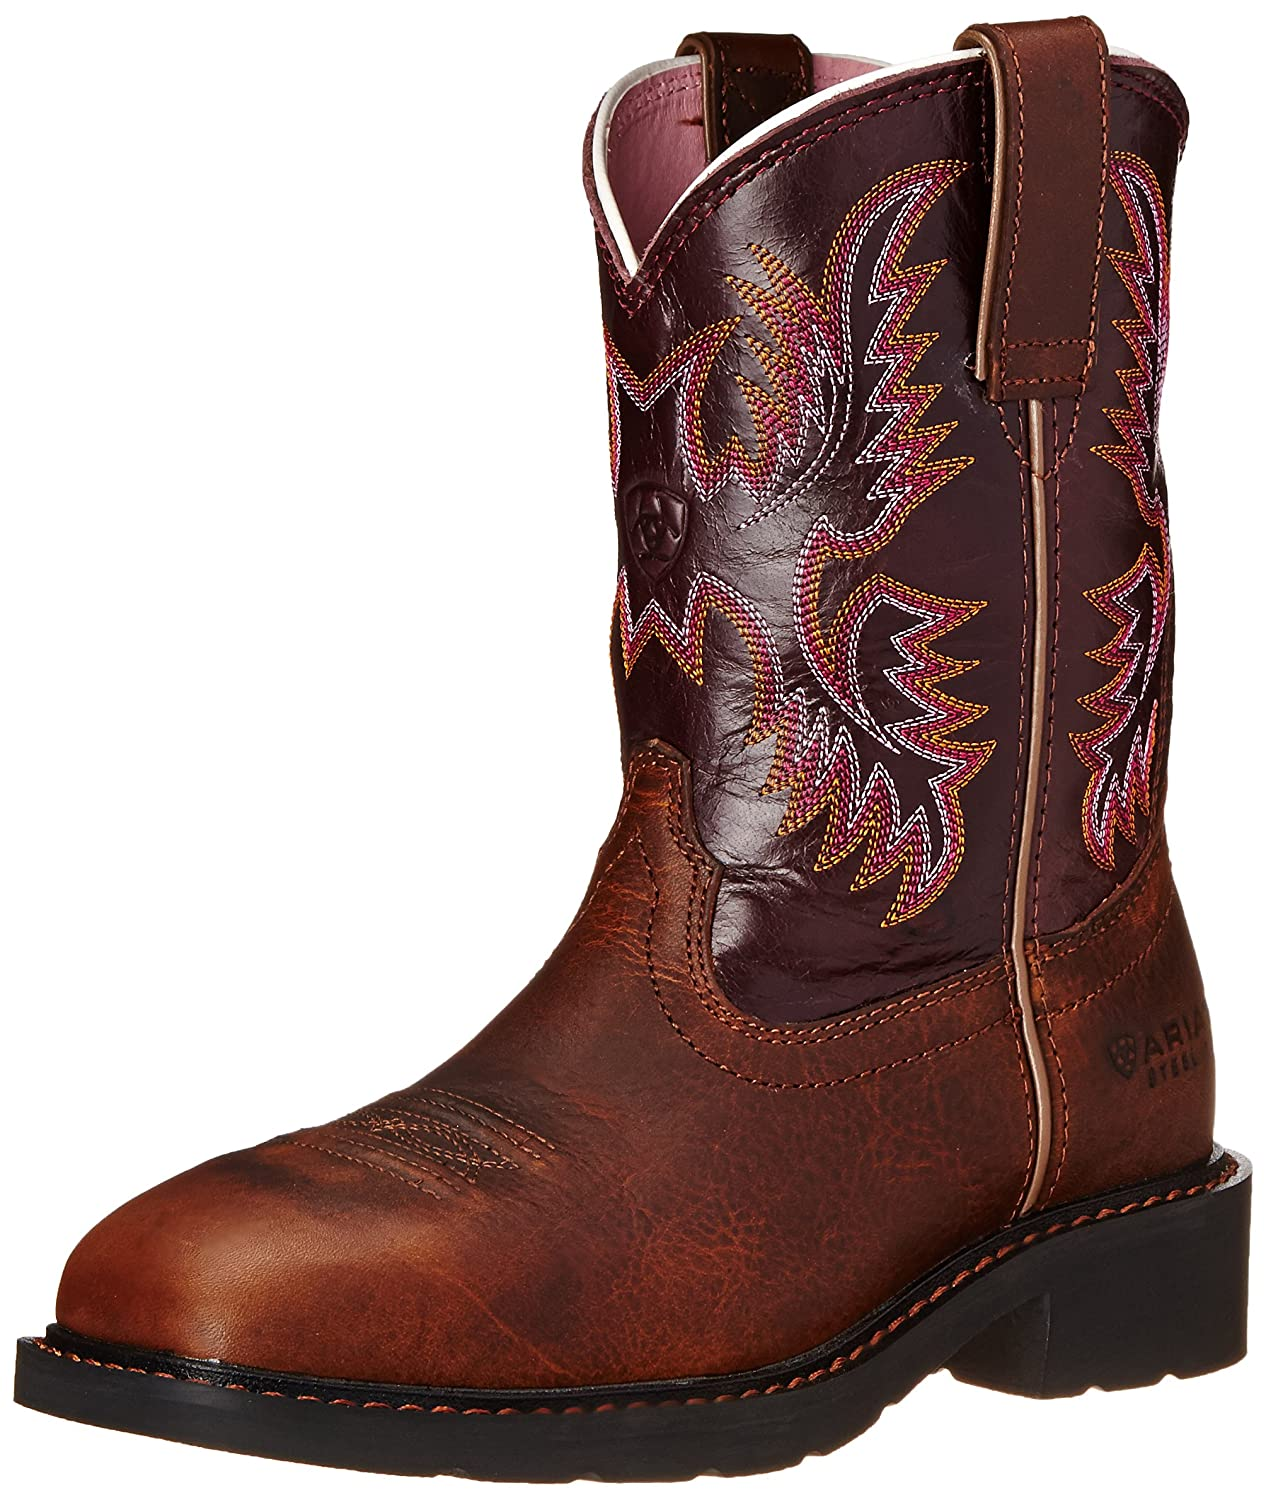 Ariat Women's Krista Pull-on Steel Toe Western Cowboy Boot B005M1Q5MY 5.5 B(M) US|Dark Tan